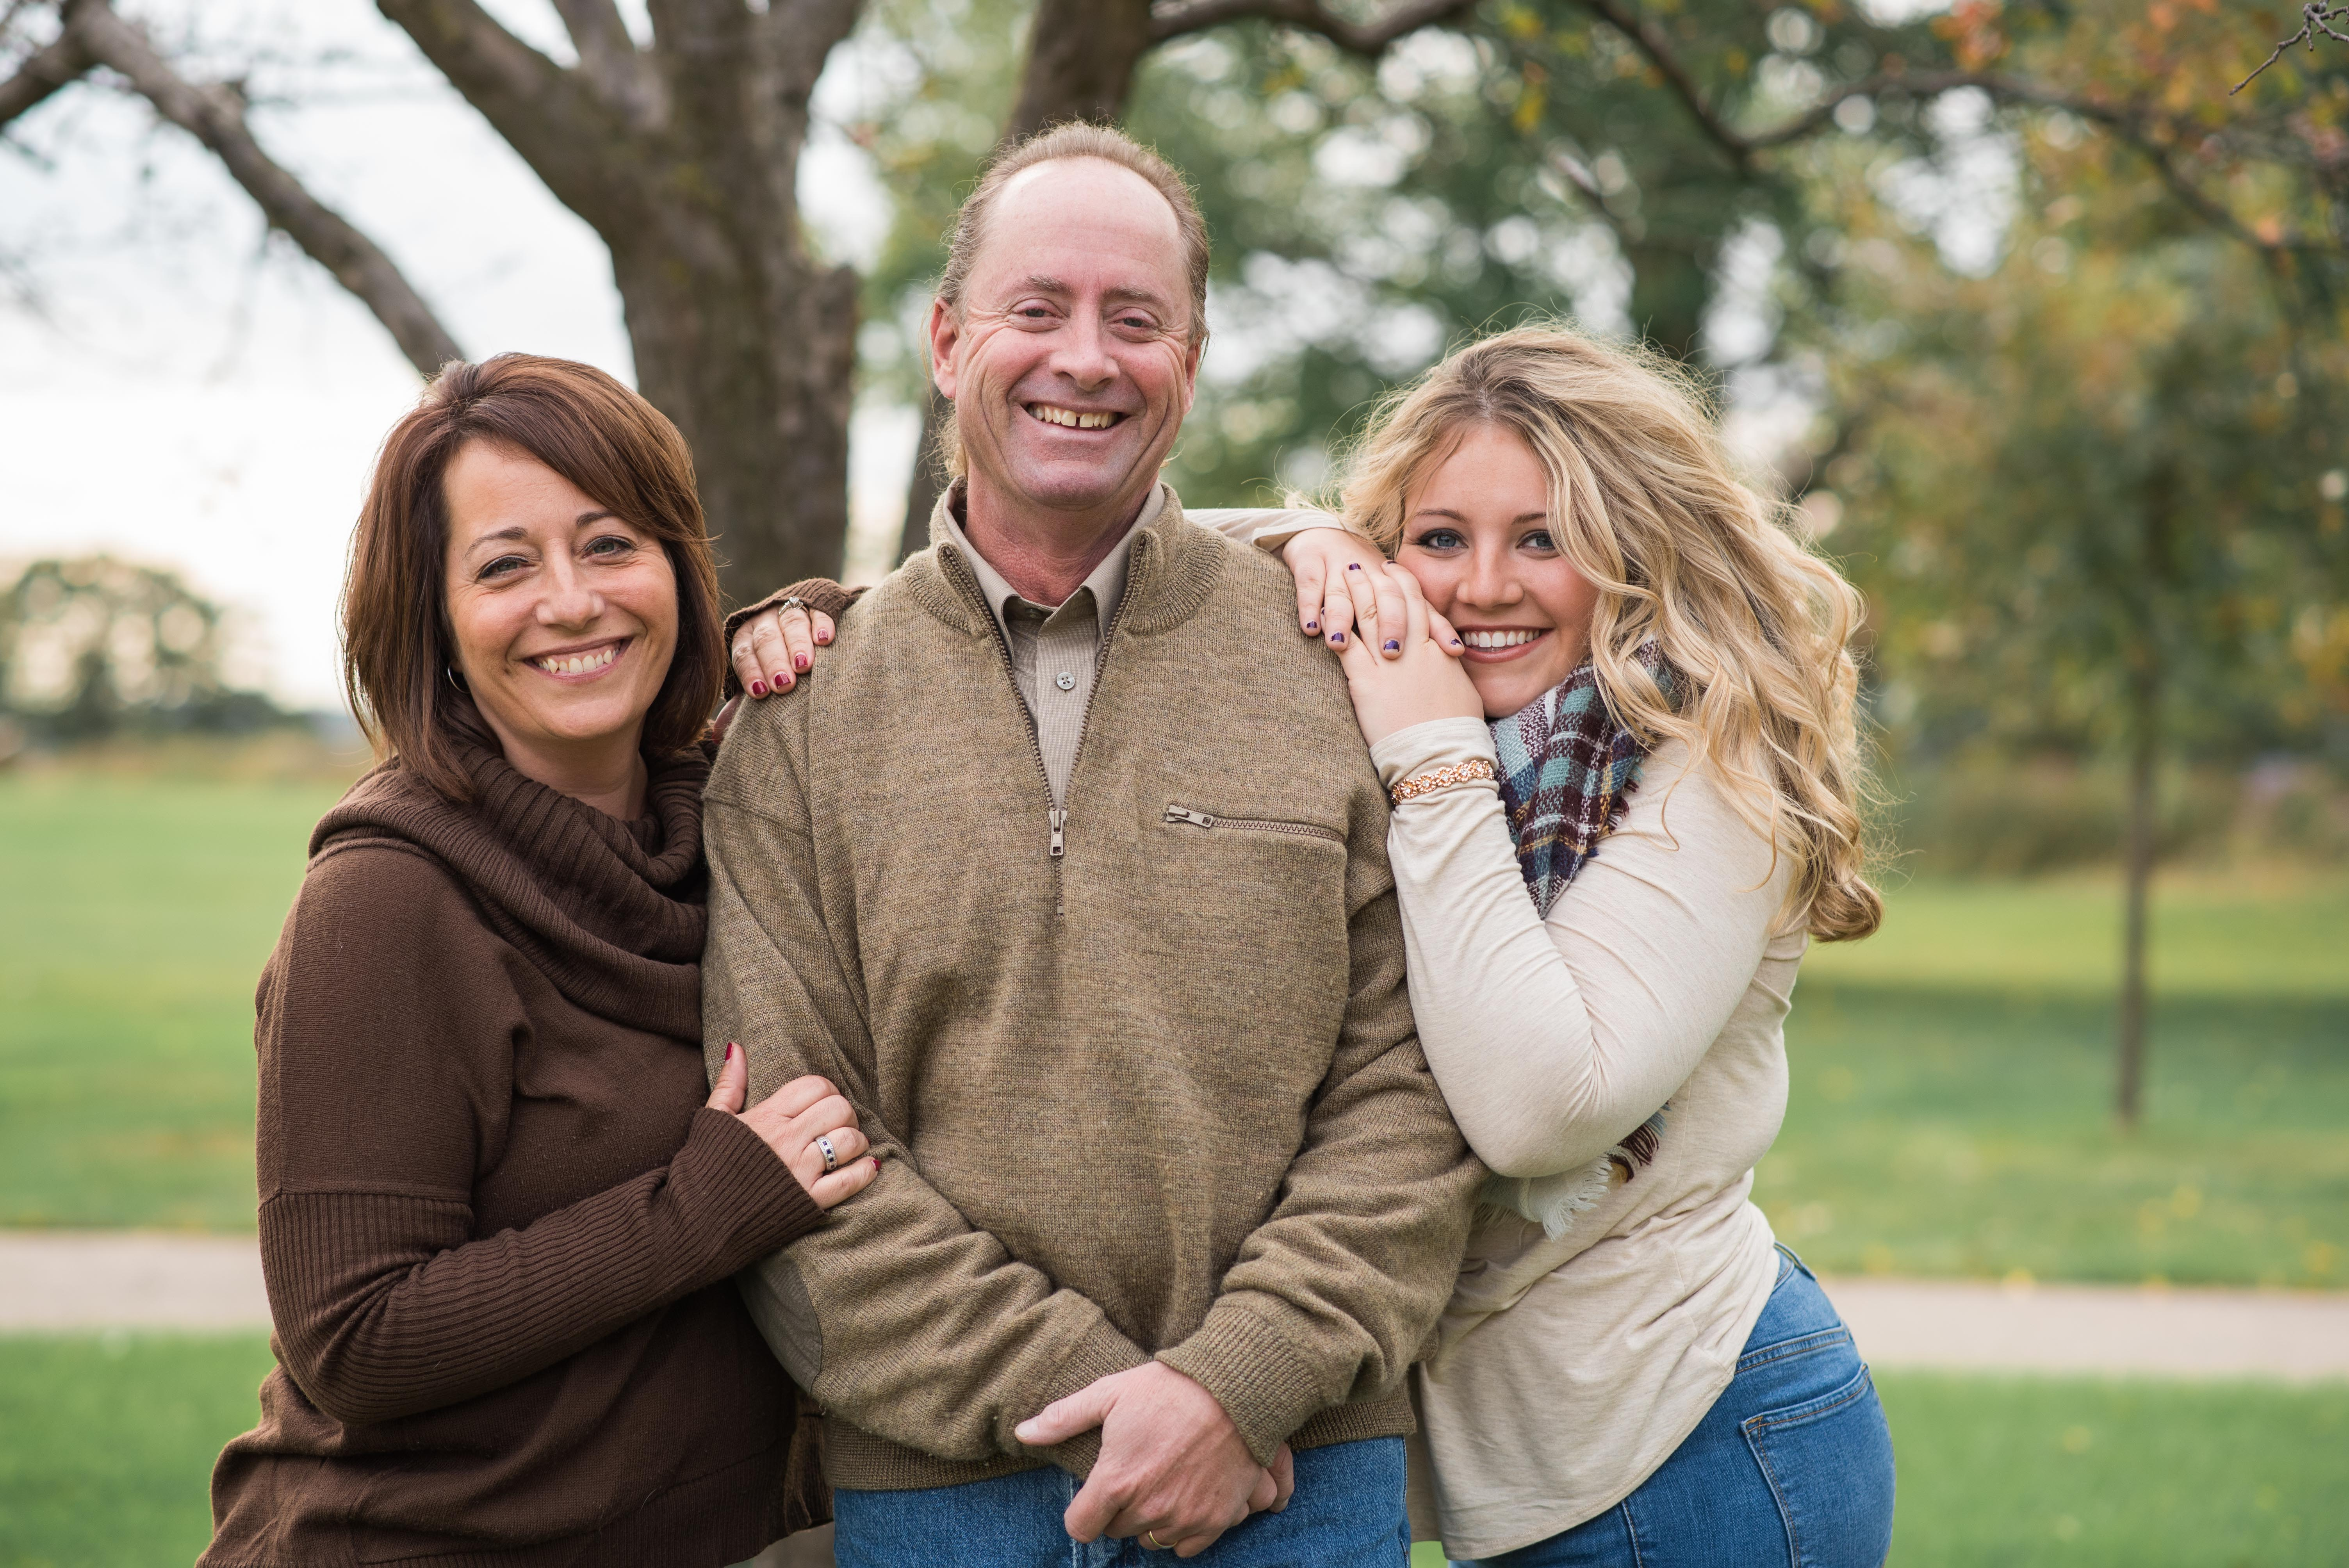 kristen calgaro photography families i m so happy that you are considering me for your family photos as a wife mother sister and daughter i understand and value the importance of family